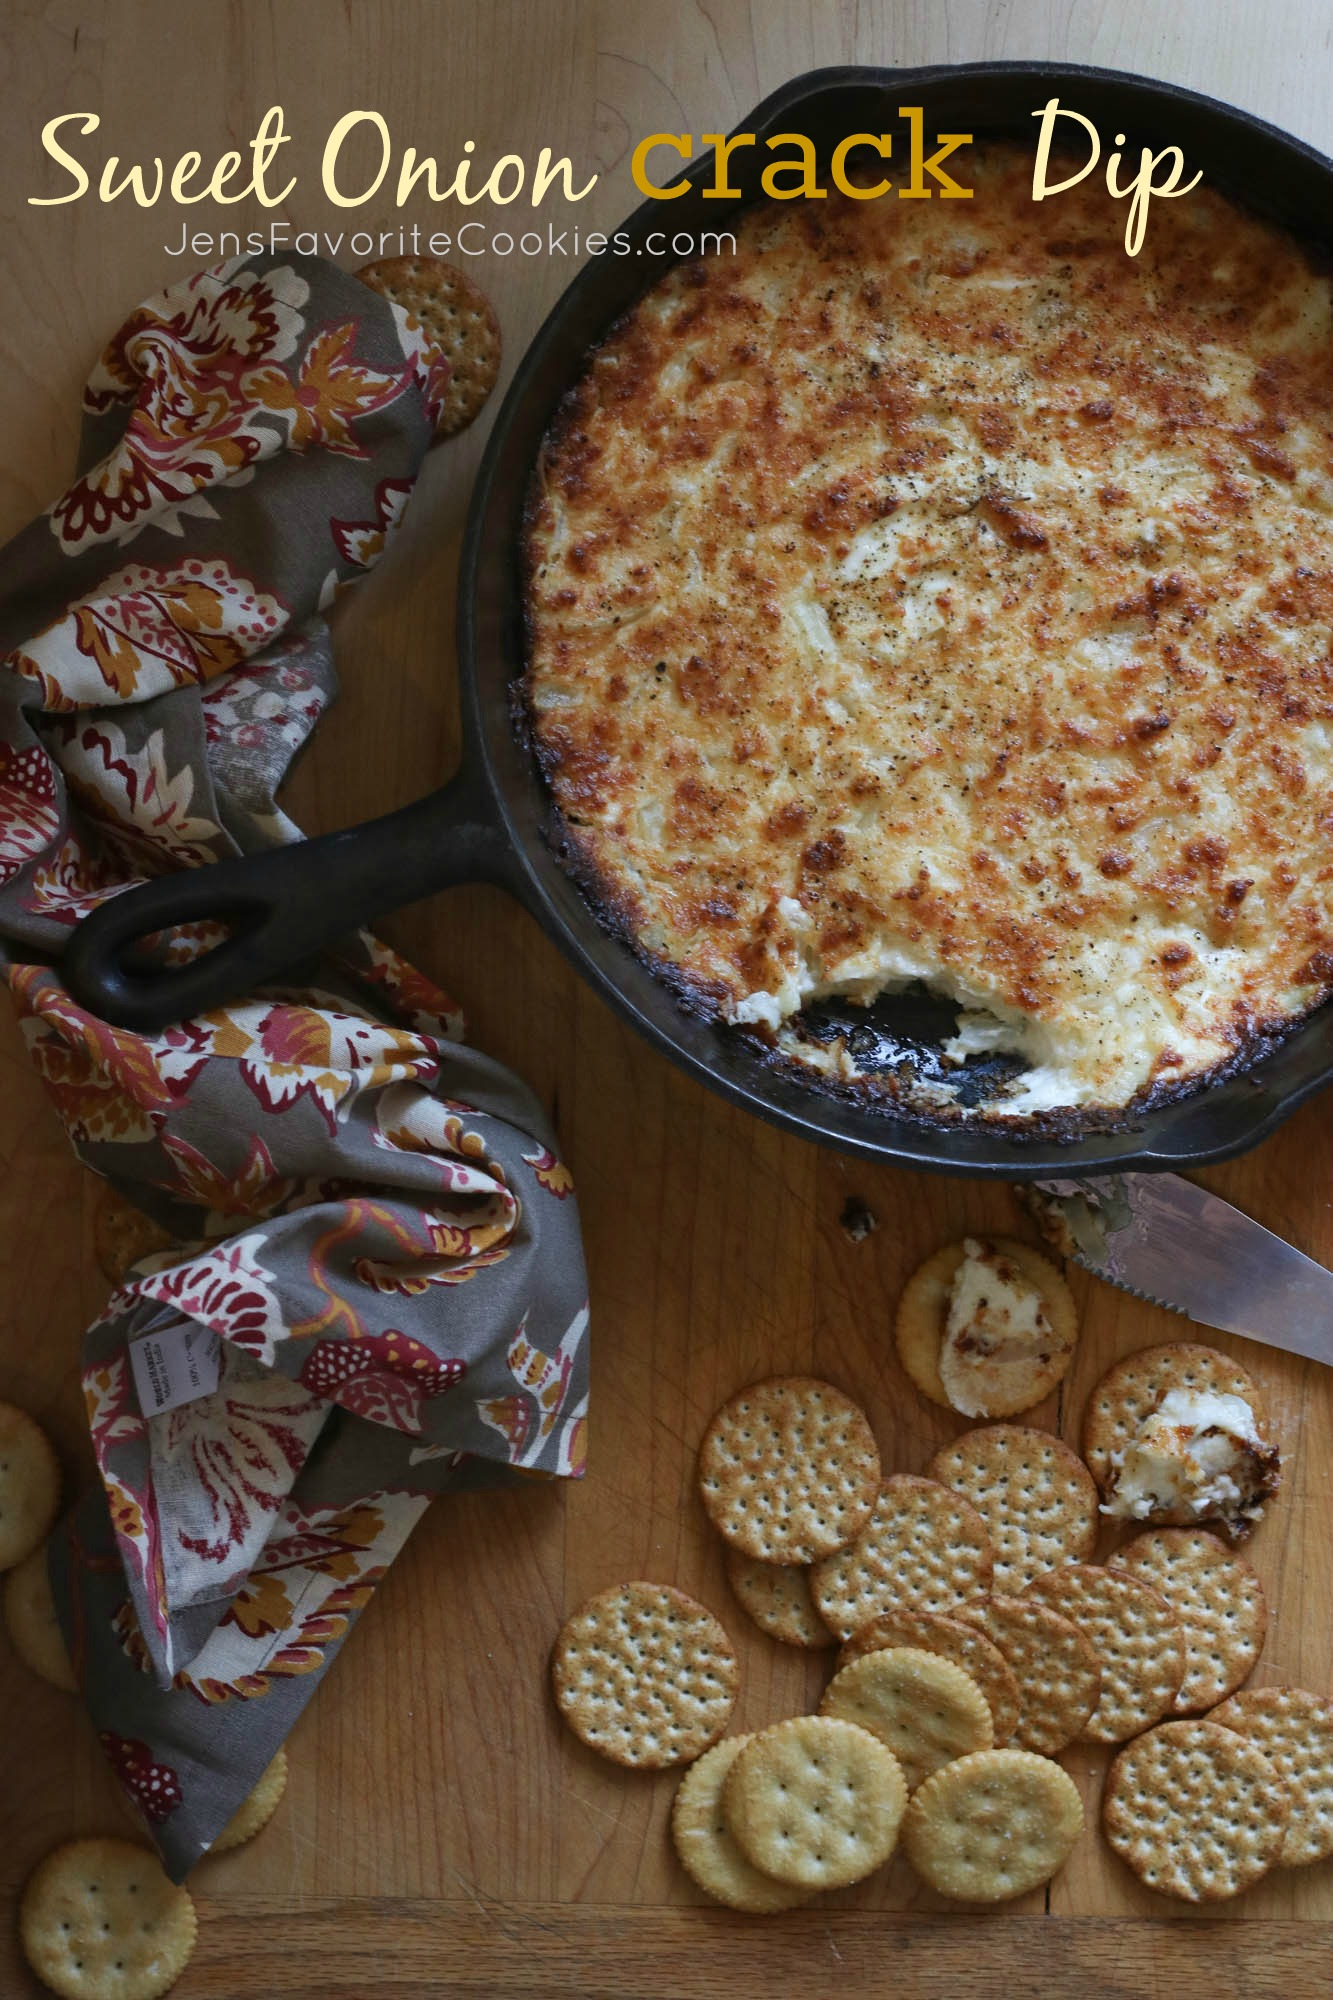 Sweet Onion Crack Dip from Jen's Favorite Cookies